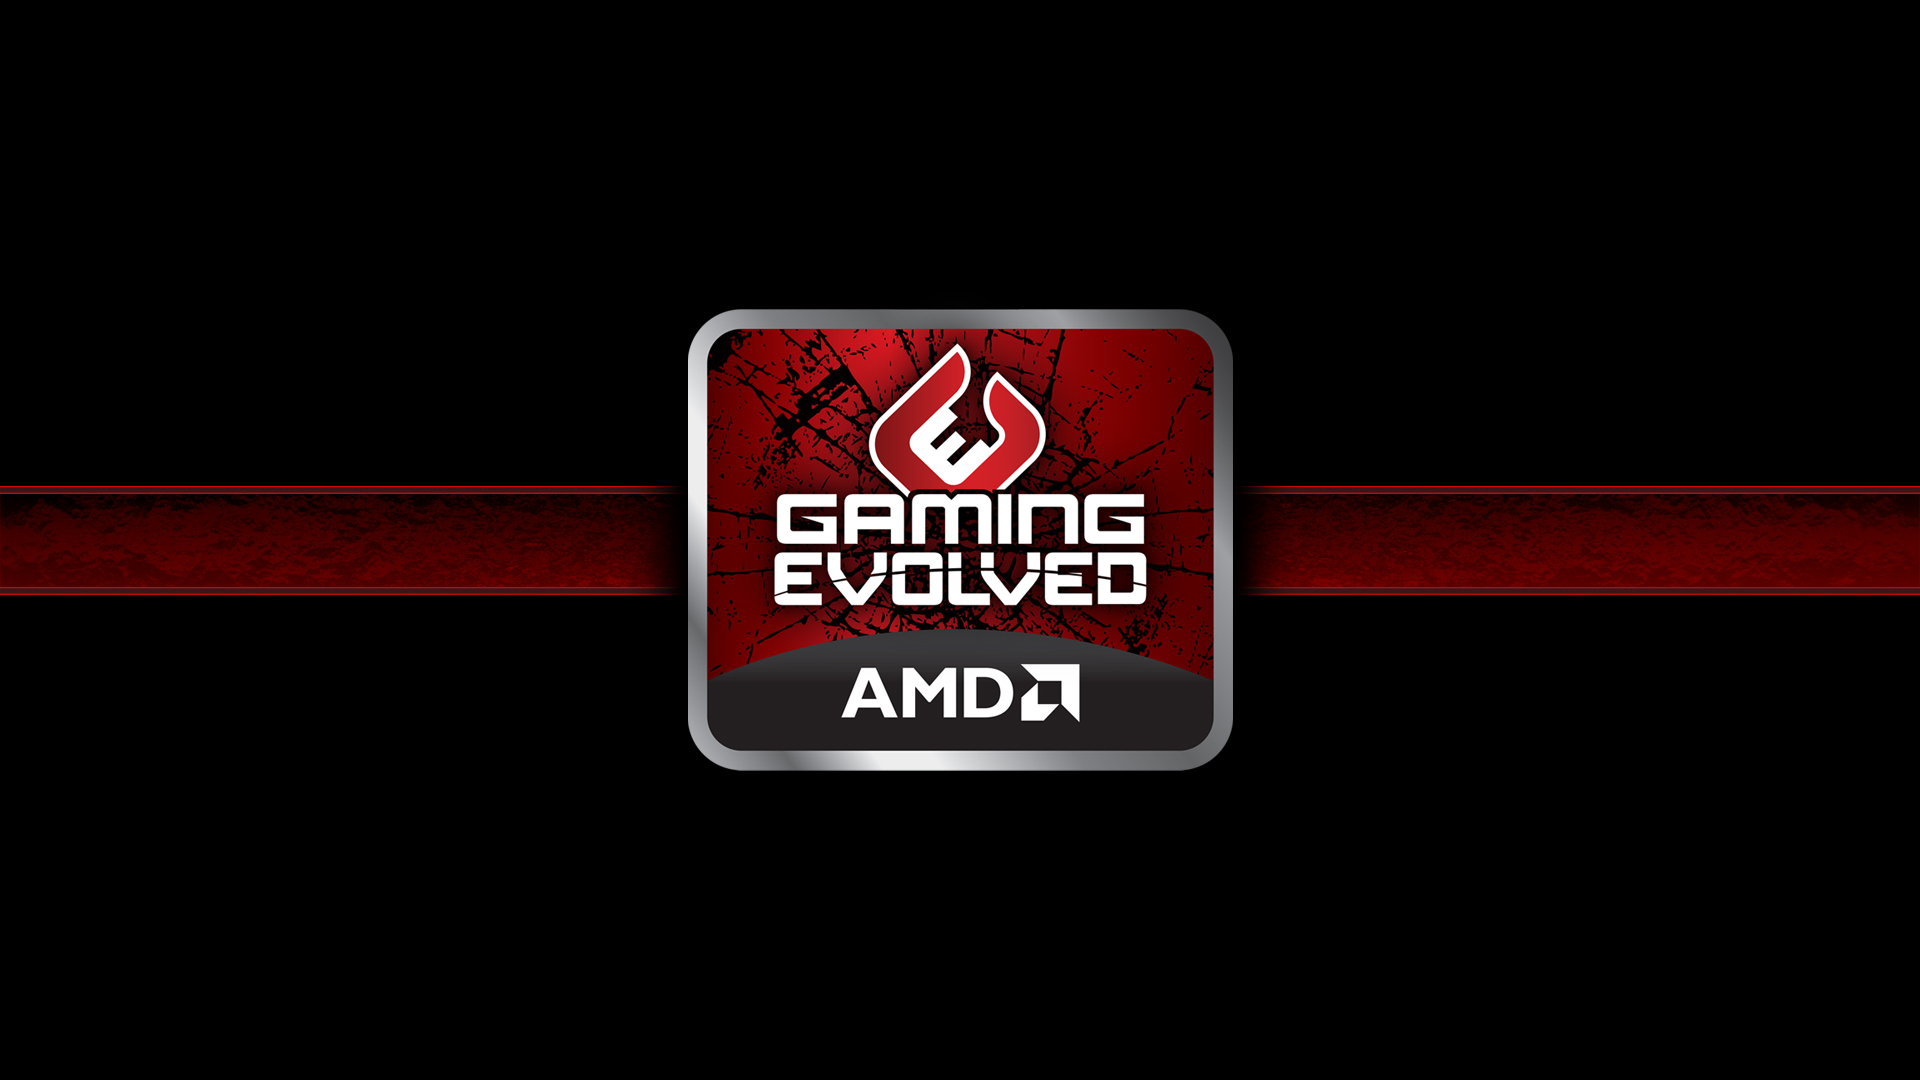 AMD Catalyst 15 3 Beta Driver Released, Adds AMD Freesync Tech Support